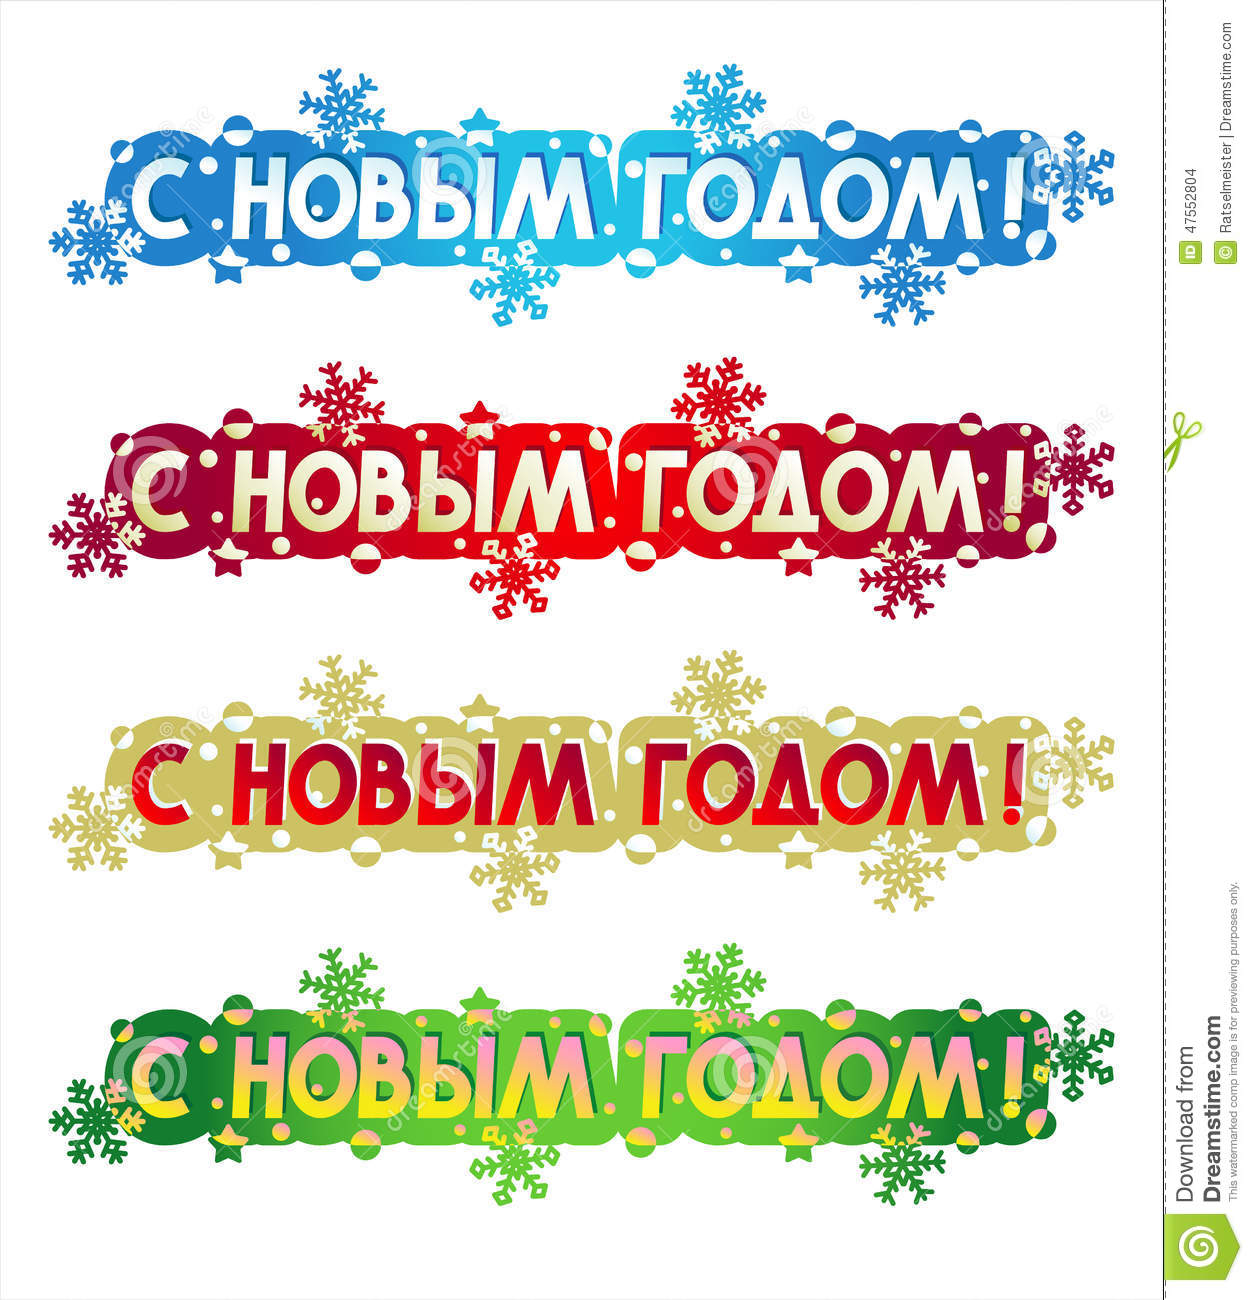 Holiday greeting happy new year in russian stock vector holiday greeting happy new year in russian m4hsunfo